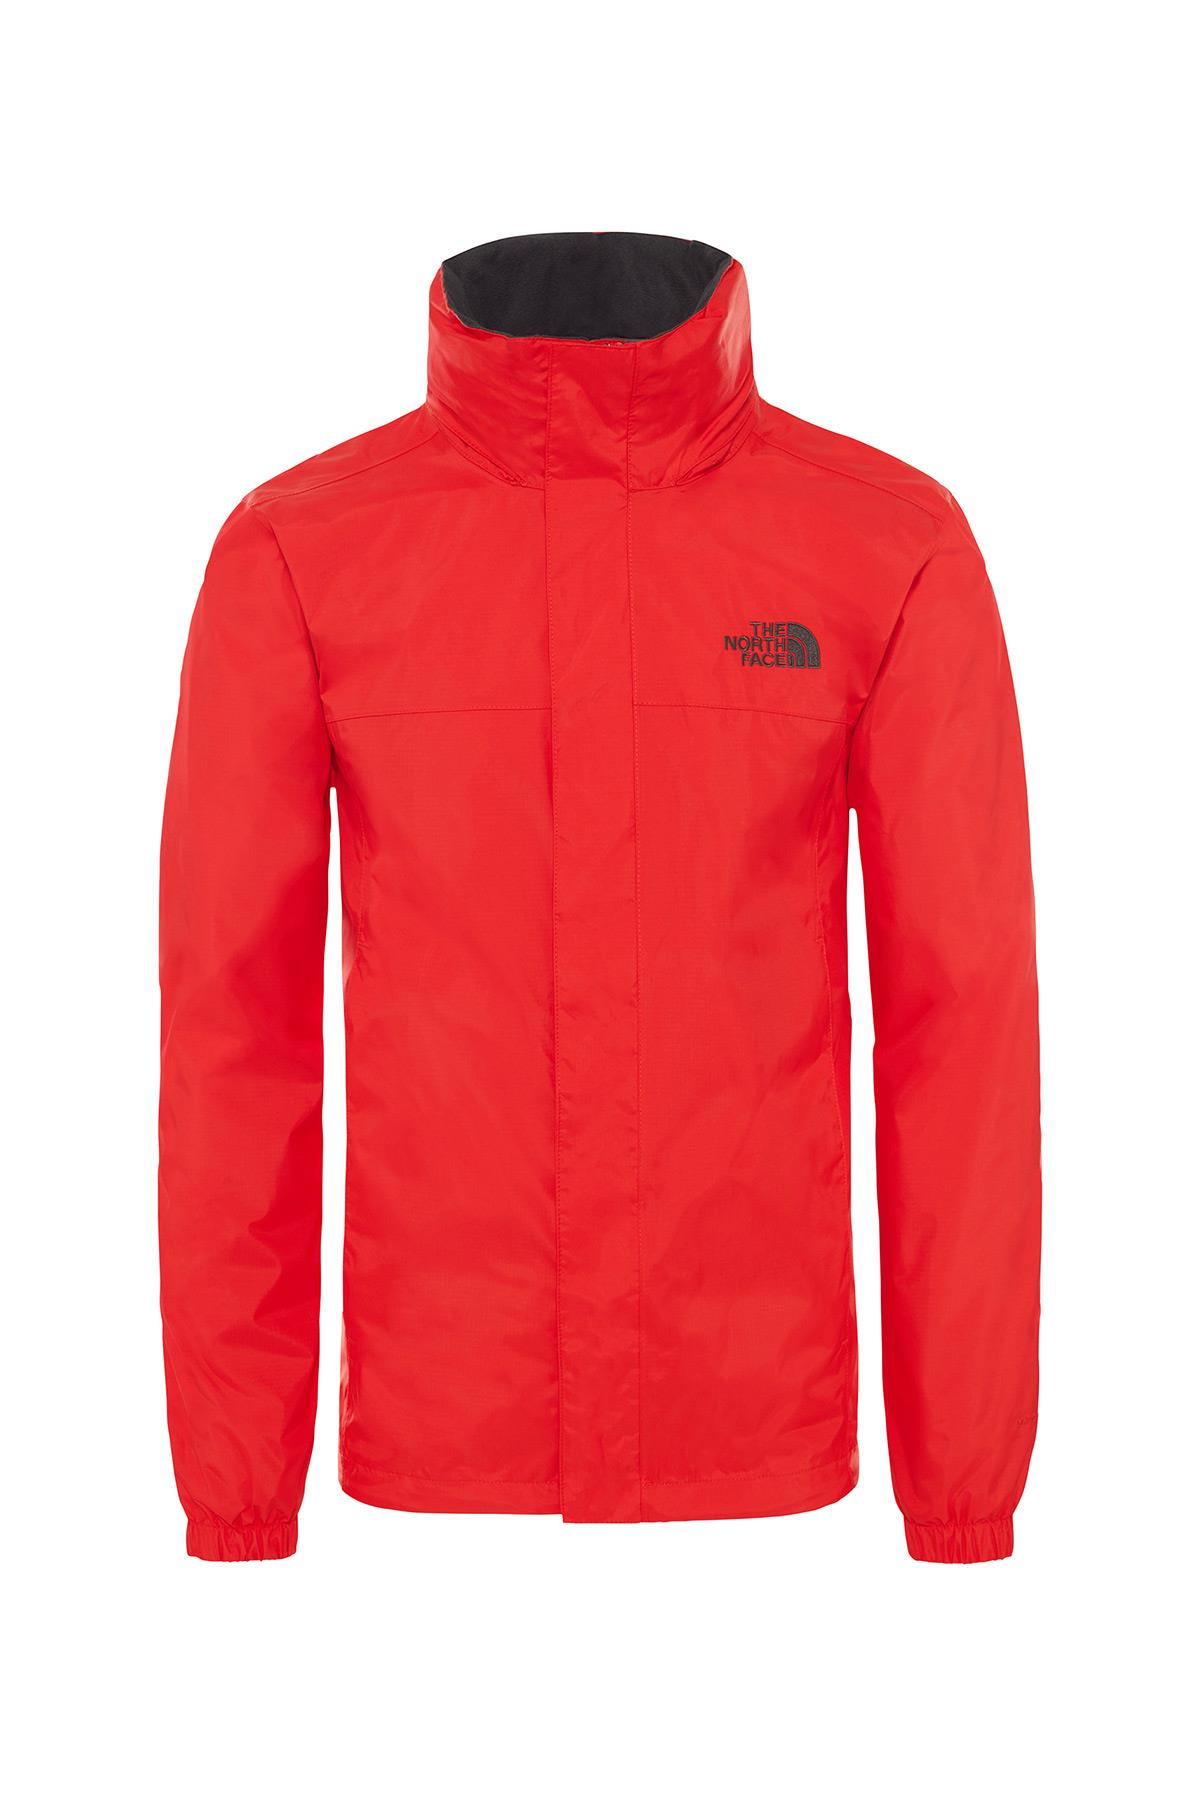 The Northface Erkek Resolve 2 Jacket T92Vd5Yh4 Ceket